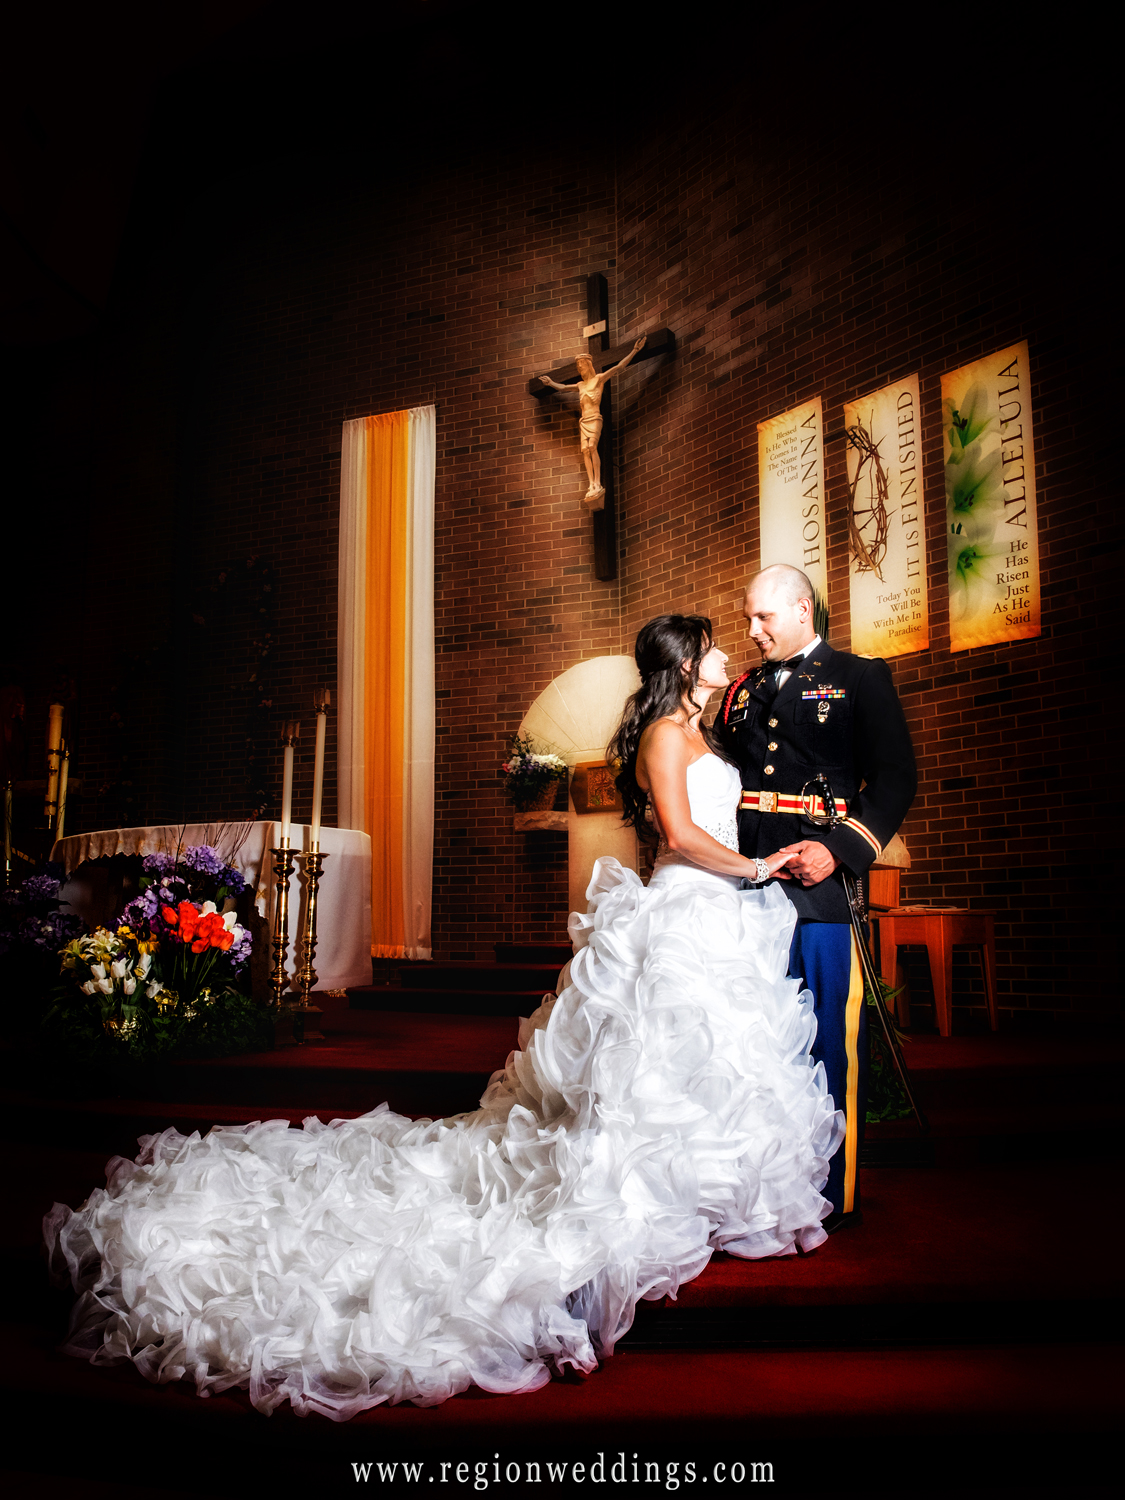 The bride and groom look at each other at the altar of Saint Matthias Church.